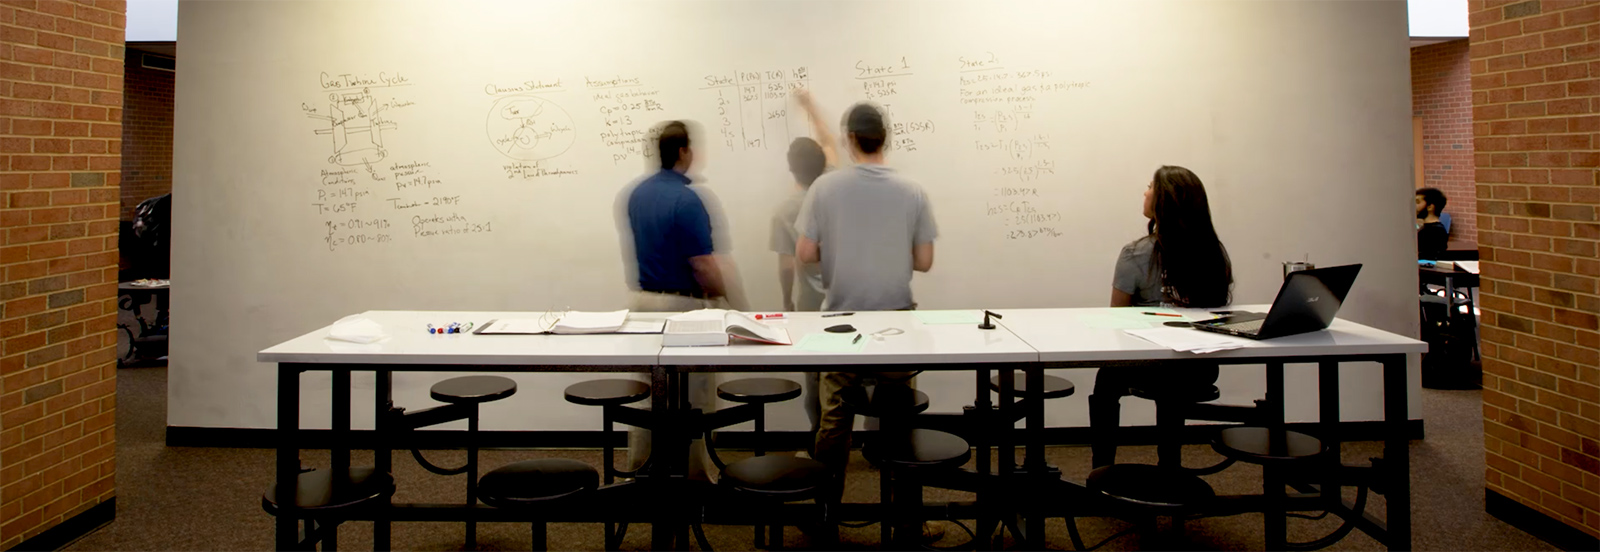 Students Working on a Whiteboard